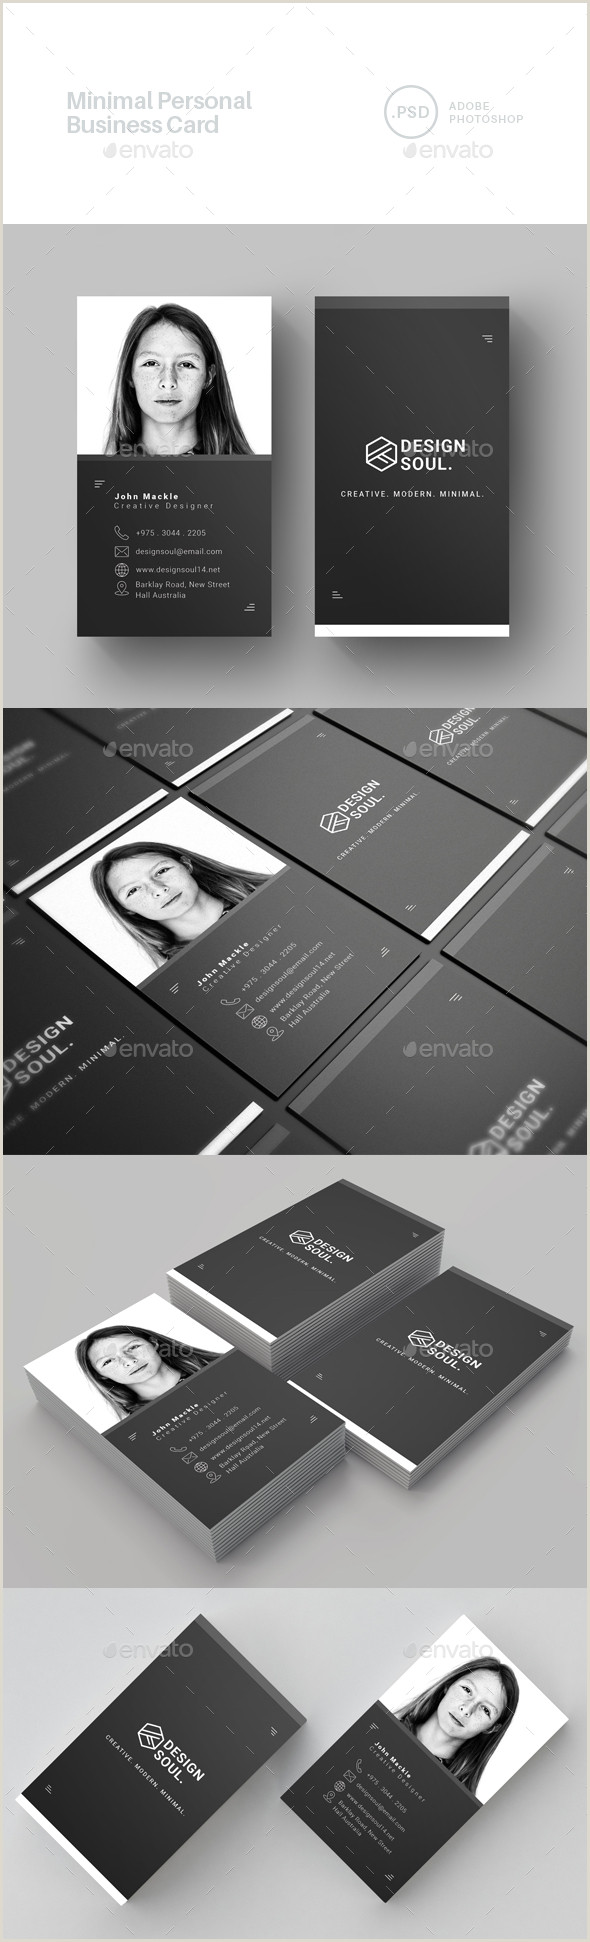 Personal Business Card Personal Business Card Templates & Designs From Graphicriver